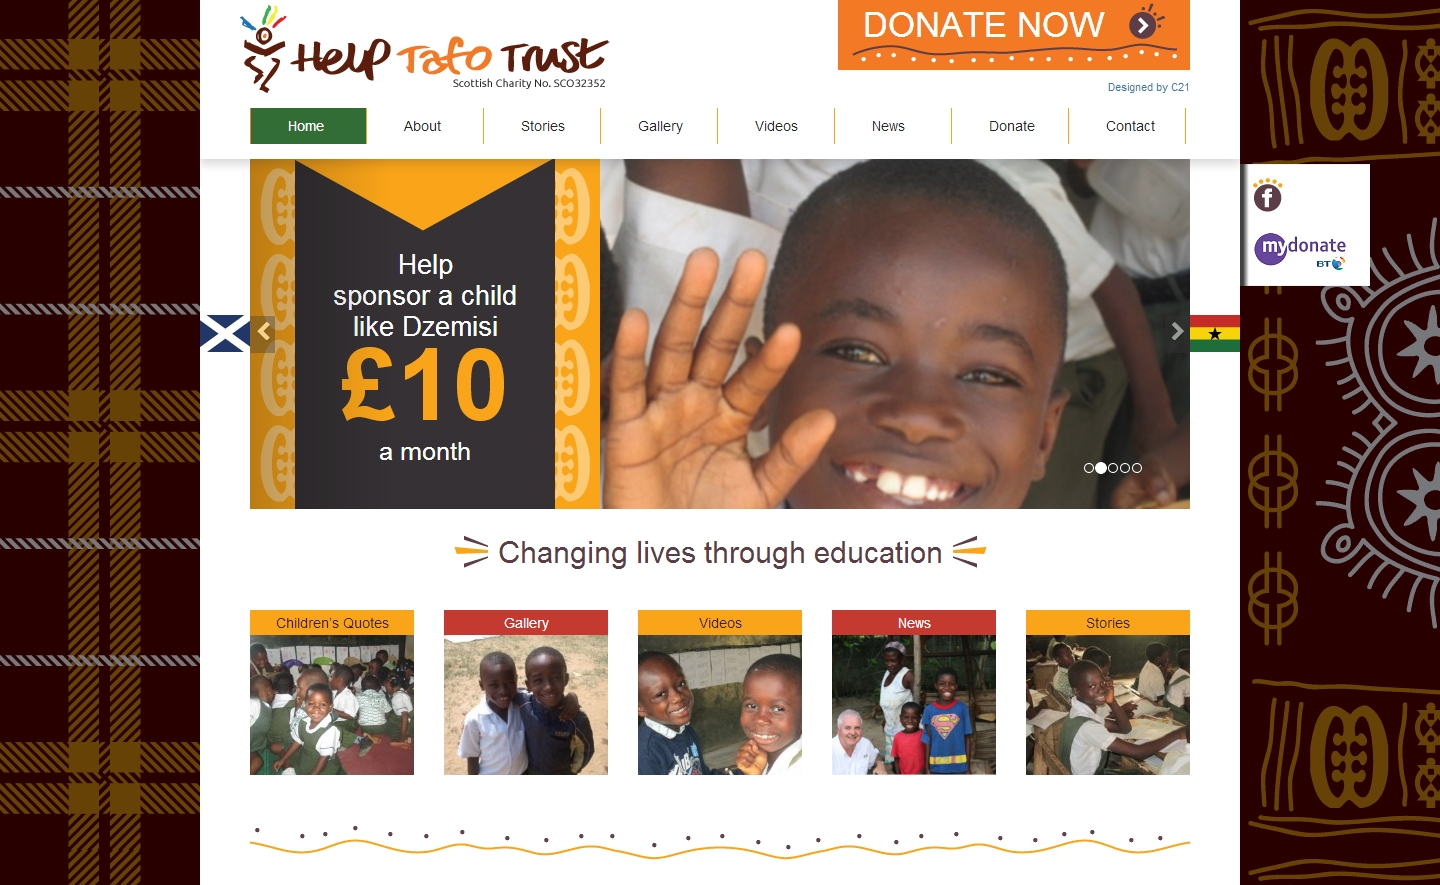 helptafotrust.co.uk